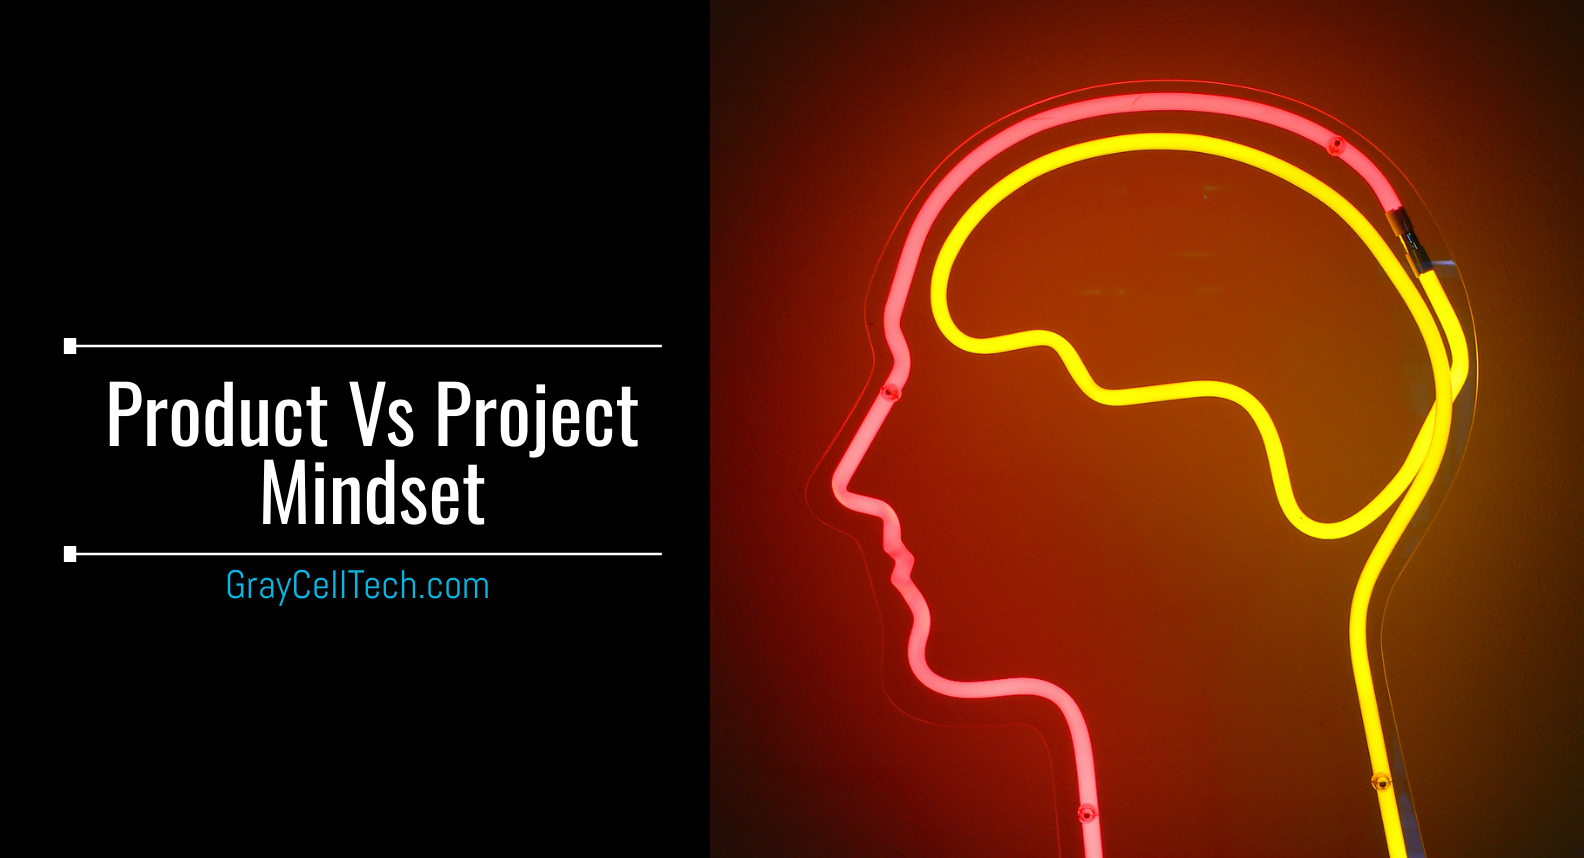 Product Mindset Vs Project Mindset, Mobile App Development, Web development